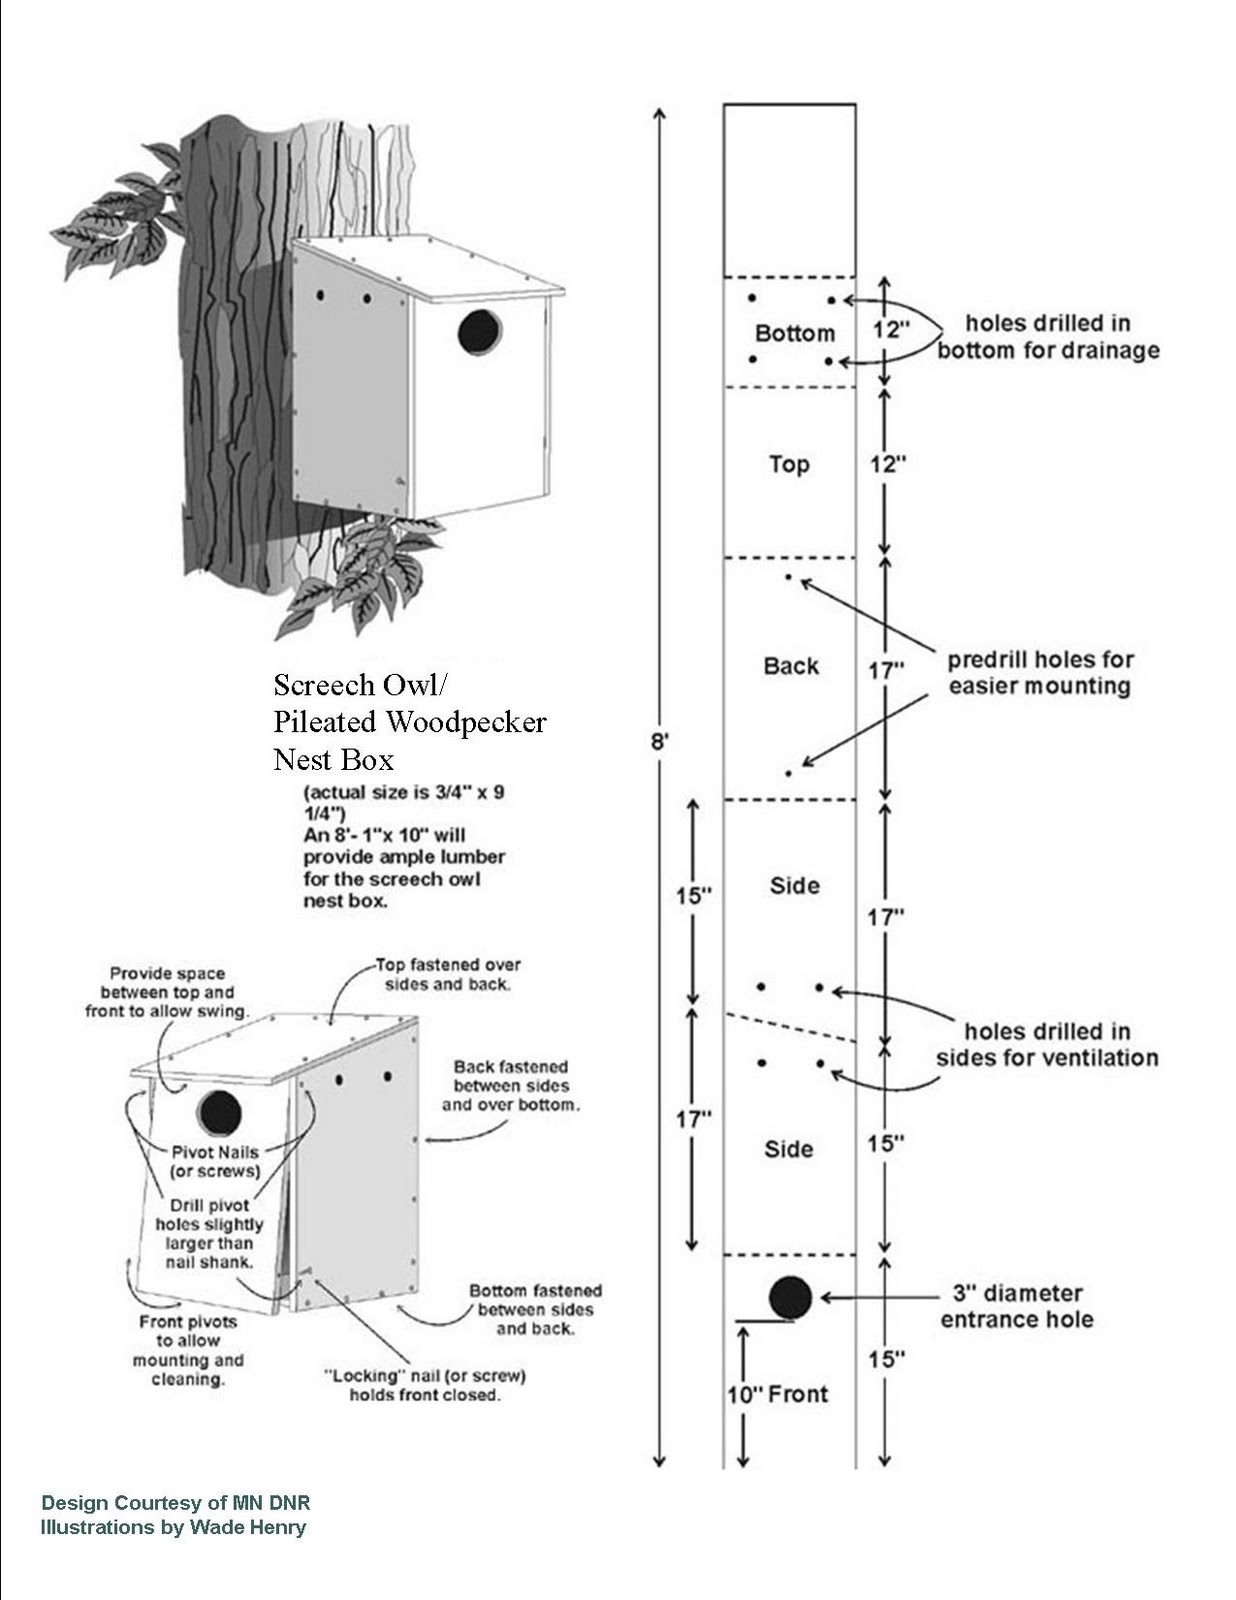 Wild Birds Unlimited: Is There a Pileated Woodpecker Nest Box?